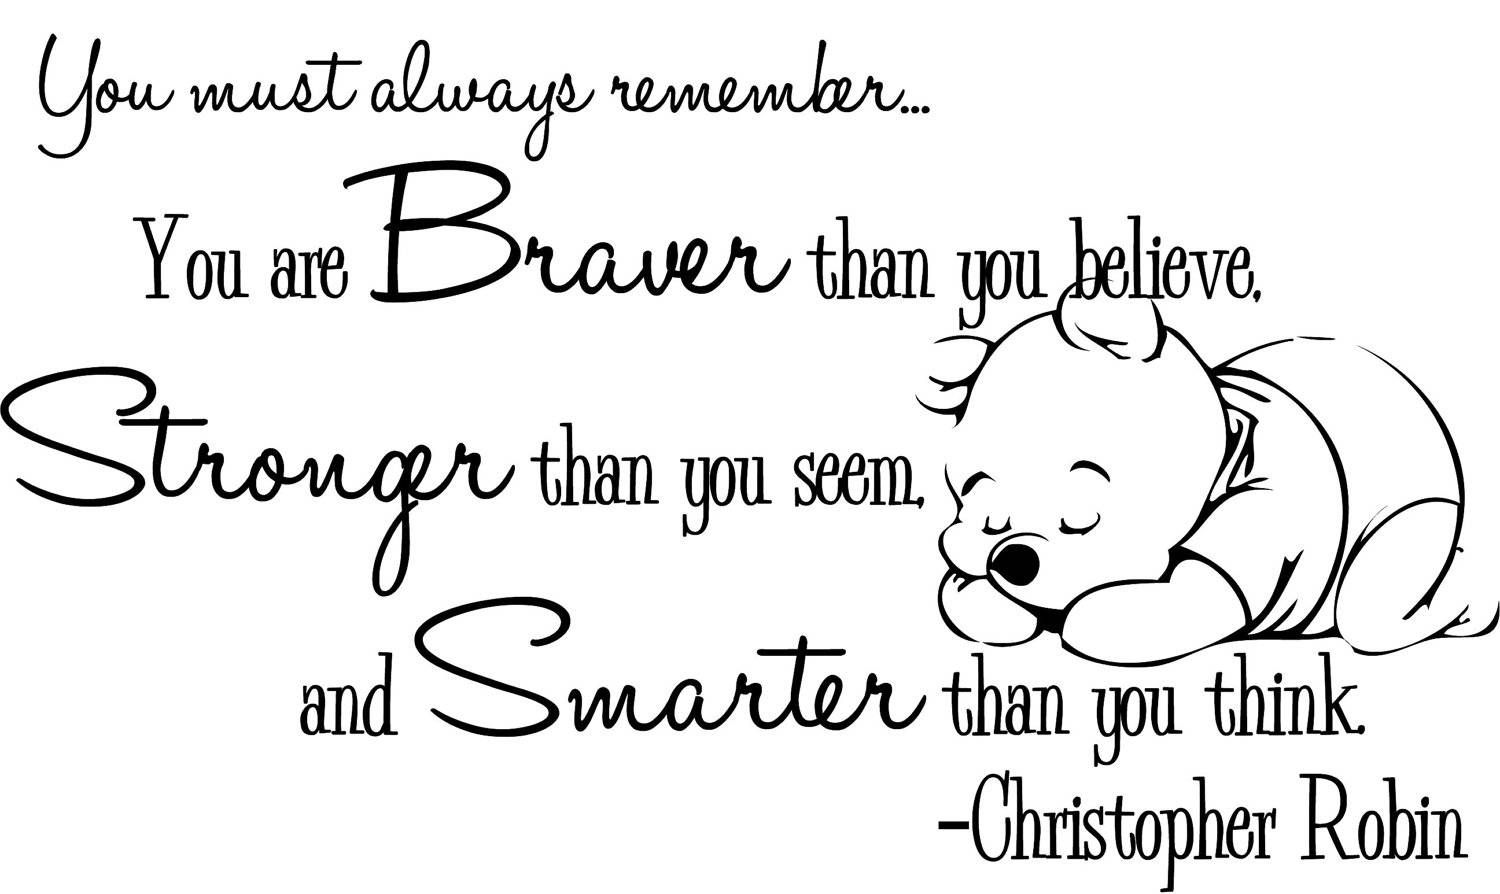 christopher Robin quote - Winnie The Pooh Picture   Winnie-the-Pooh ...